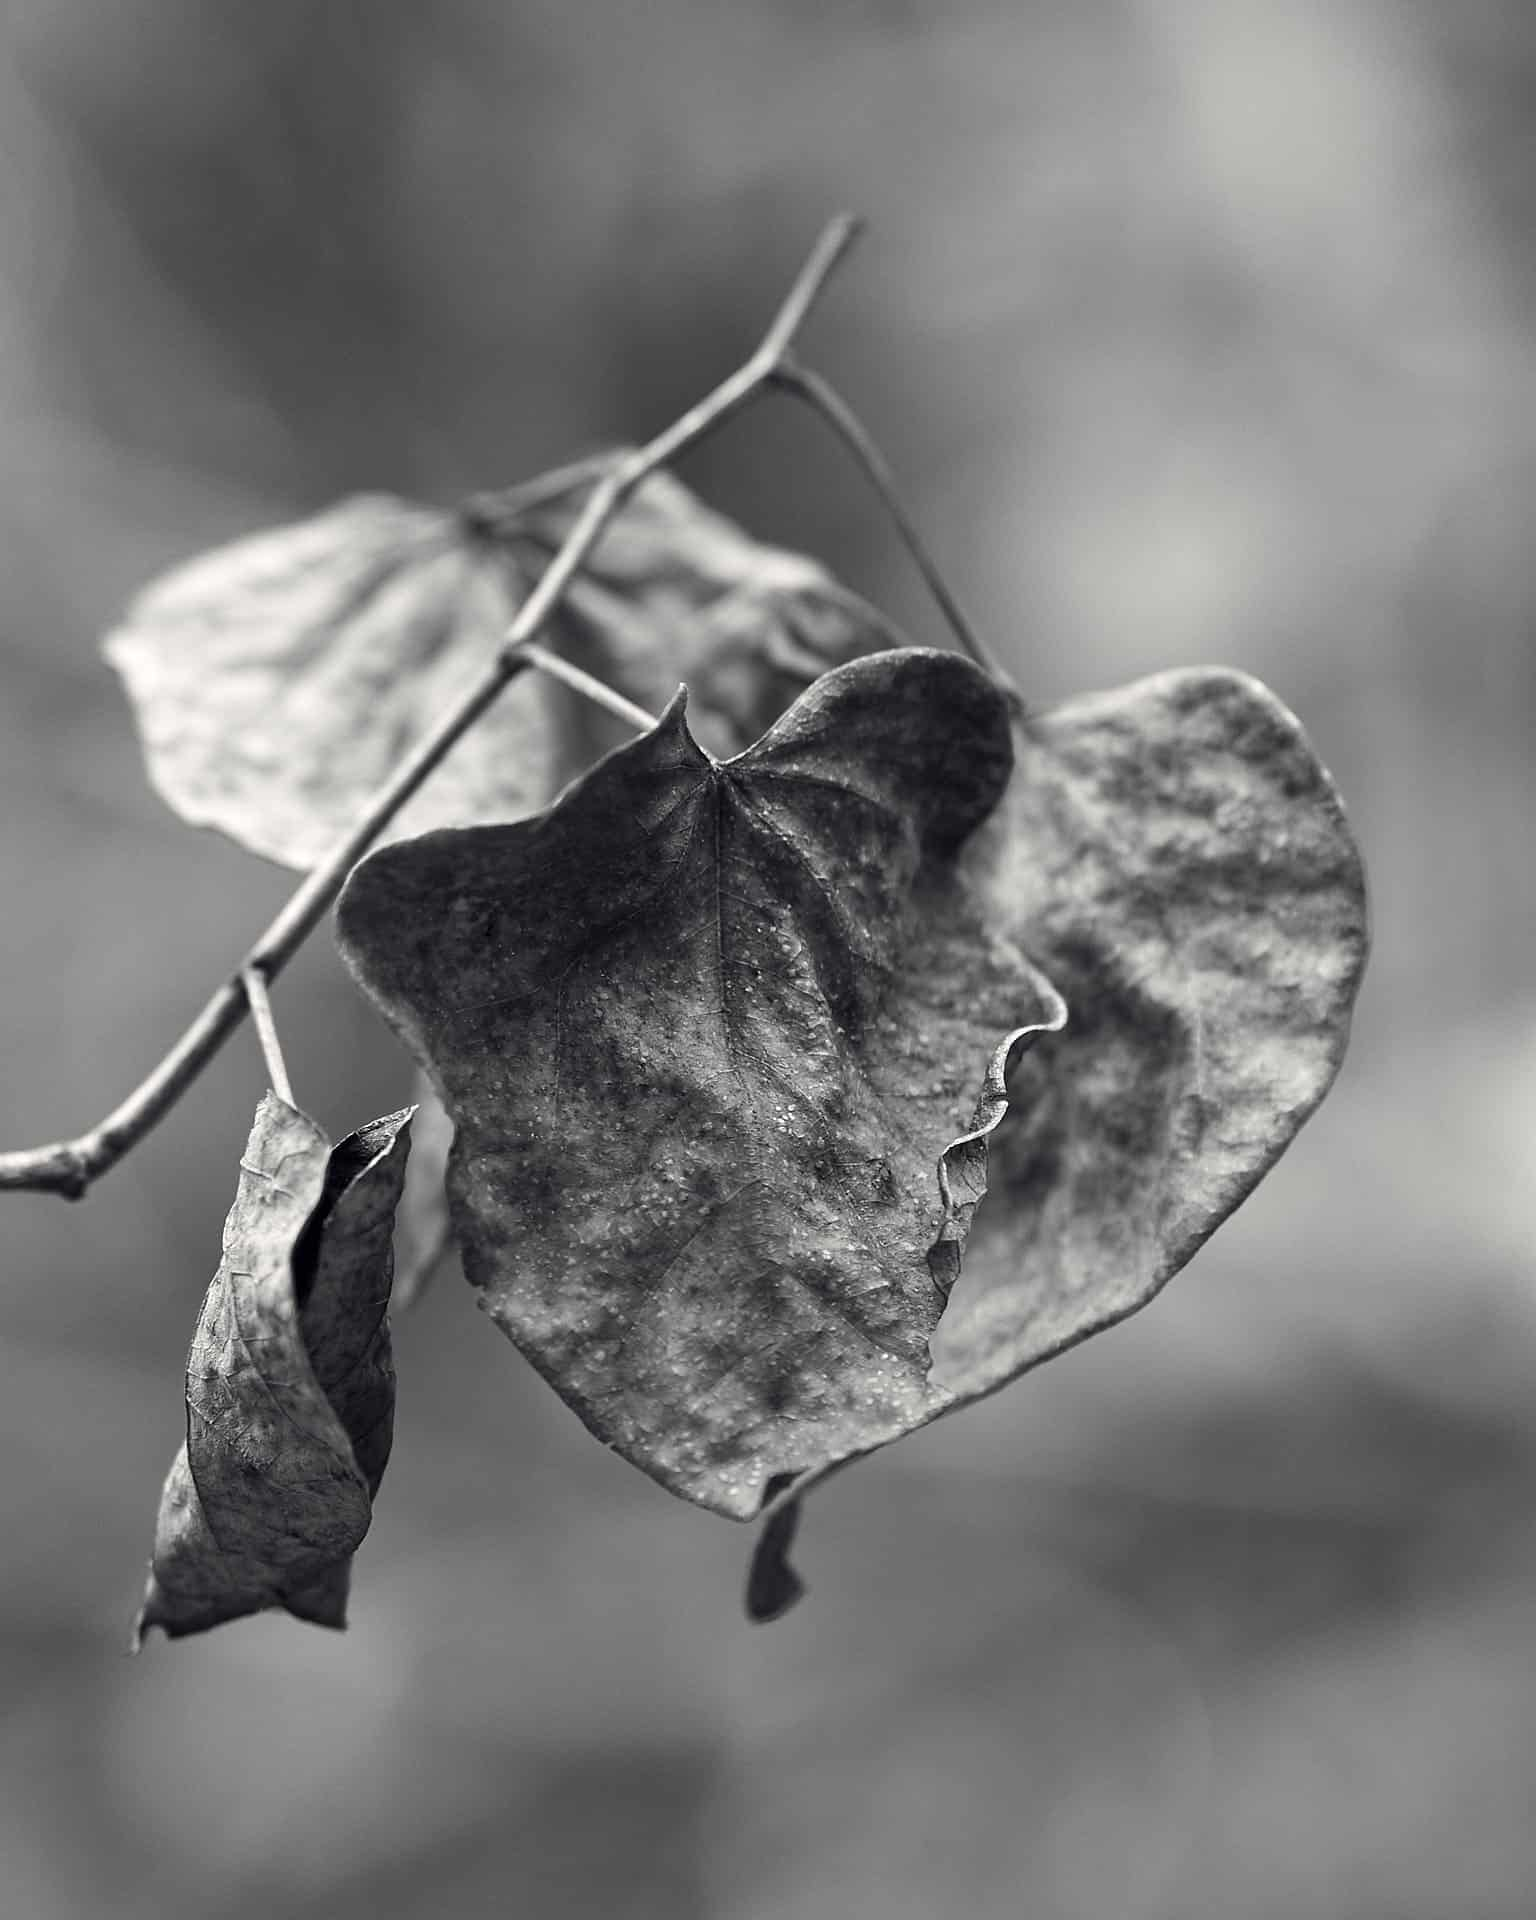 Leaves photographed in black and white.